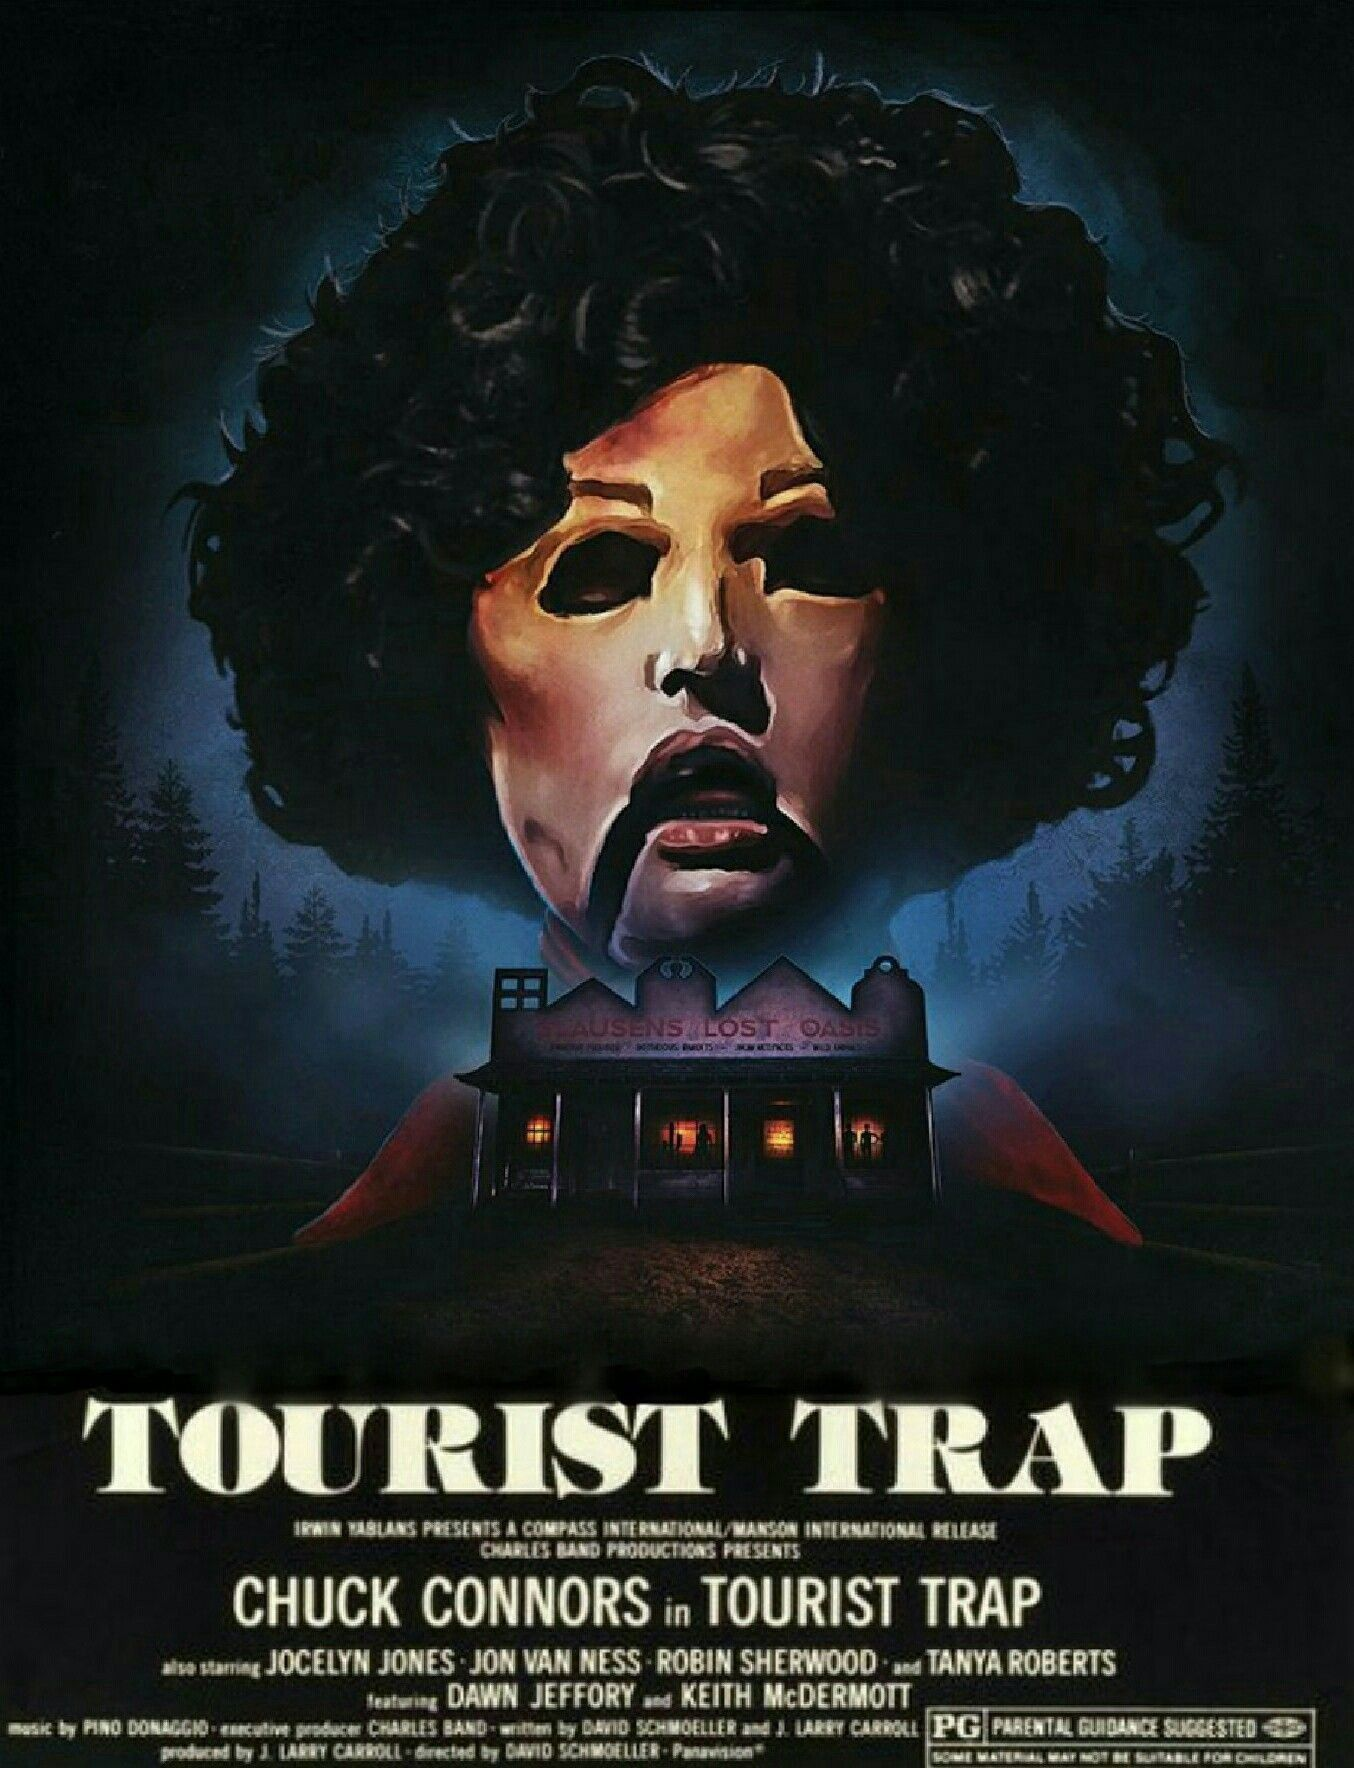 Mannequin Madness: Why 2005's HOUSE OF WAX is Actually A Remake of 1979's TOURIST TRAP